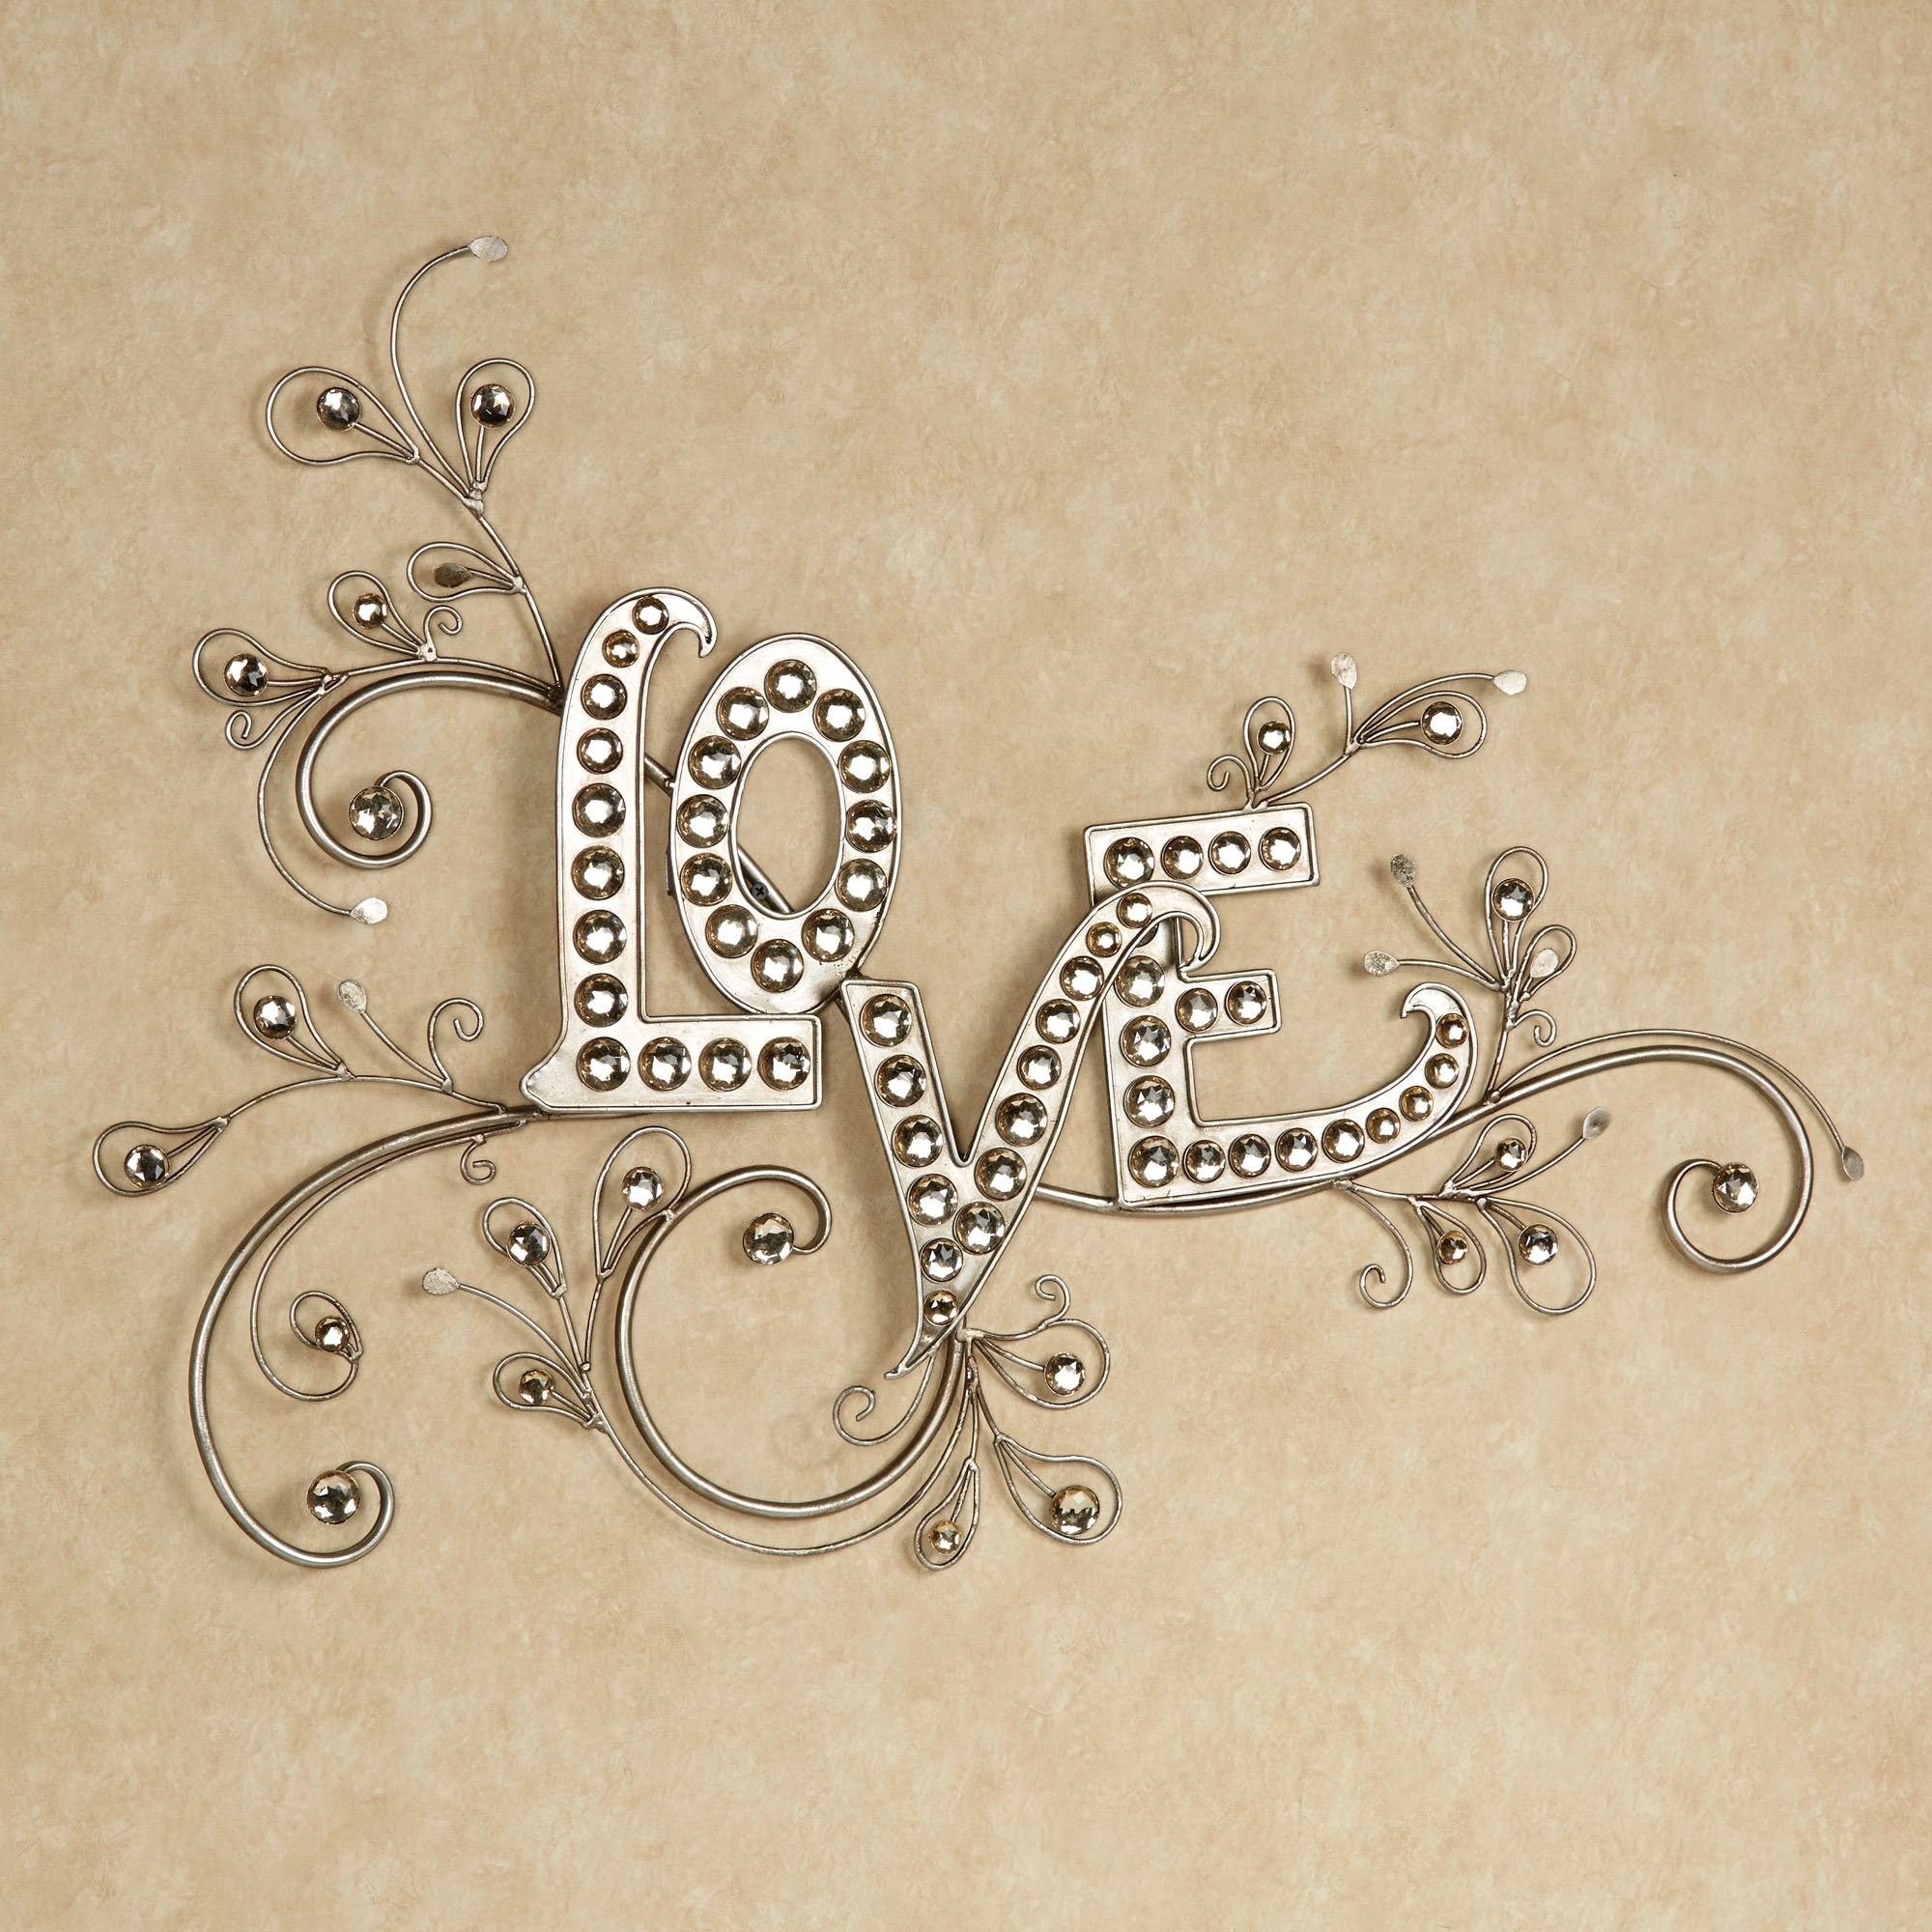 Creative Design Love Wall Decor Home Remodel Sparkling Gem Word Art Regarding Recent Kohl\'s Metal Wall Art (View 2 of 20)